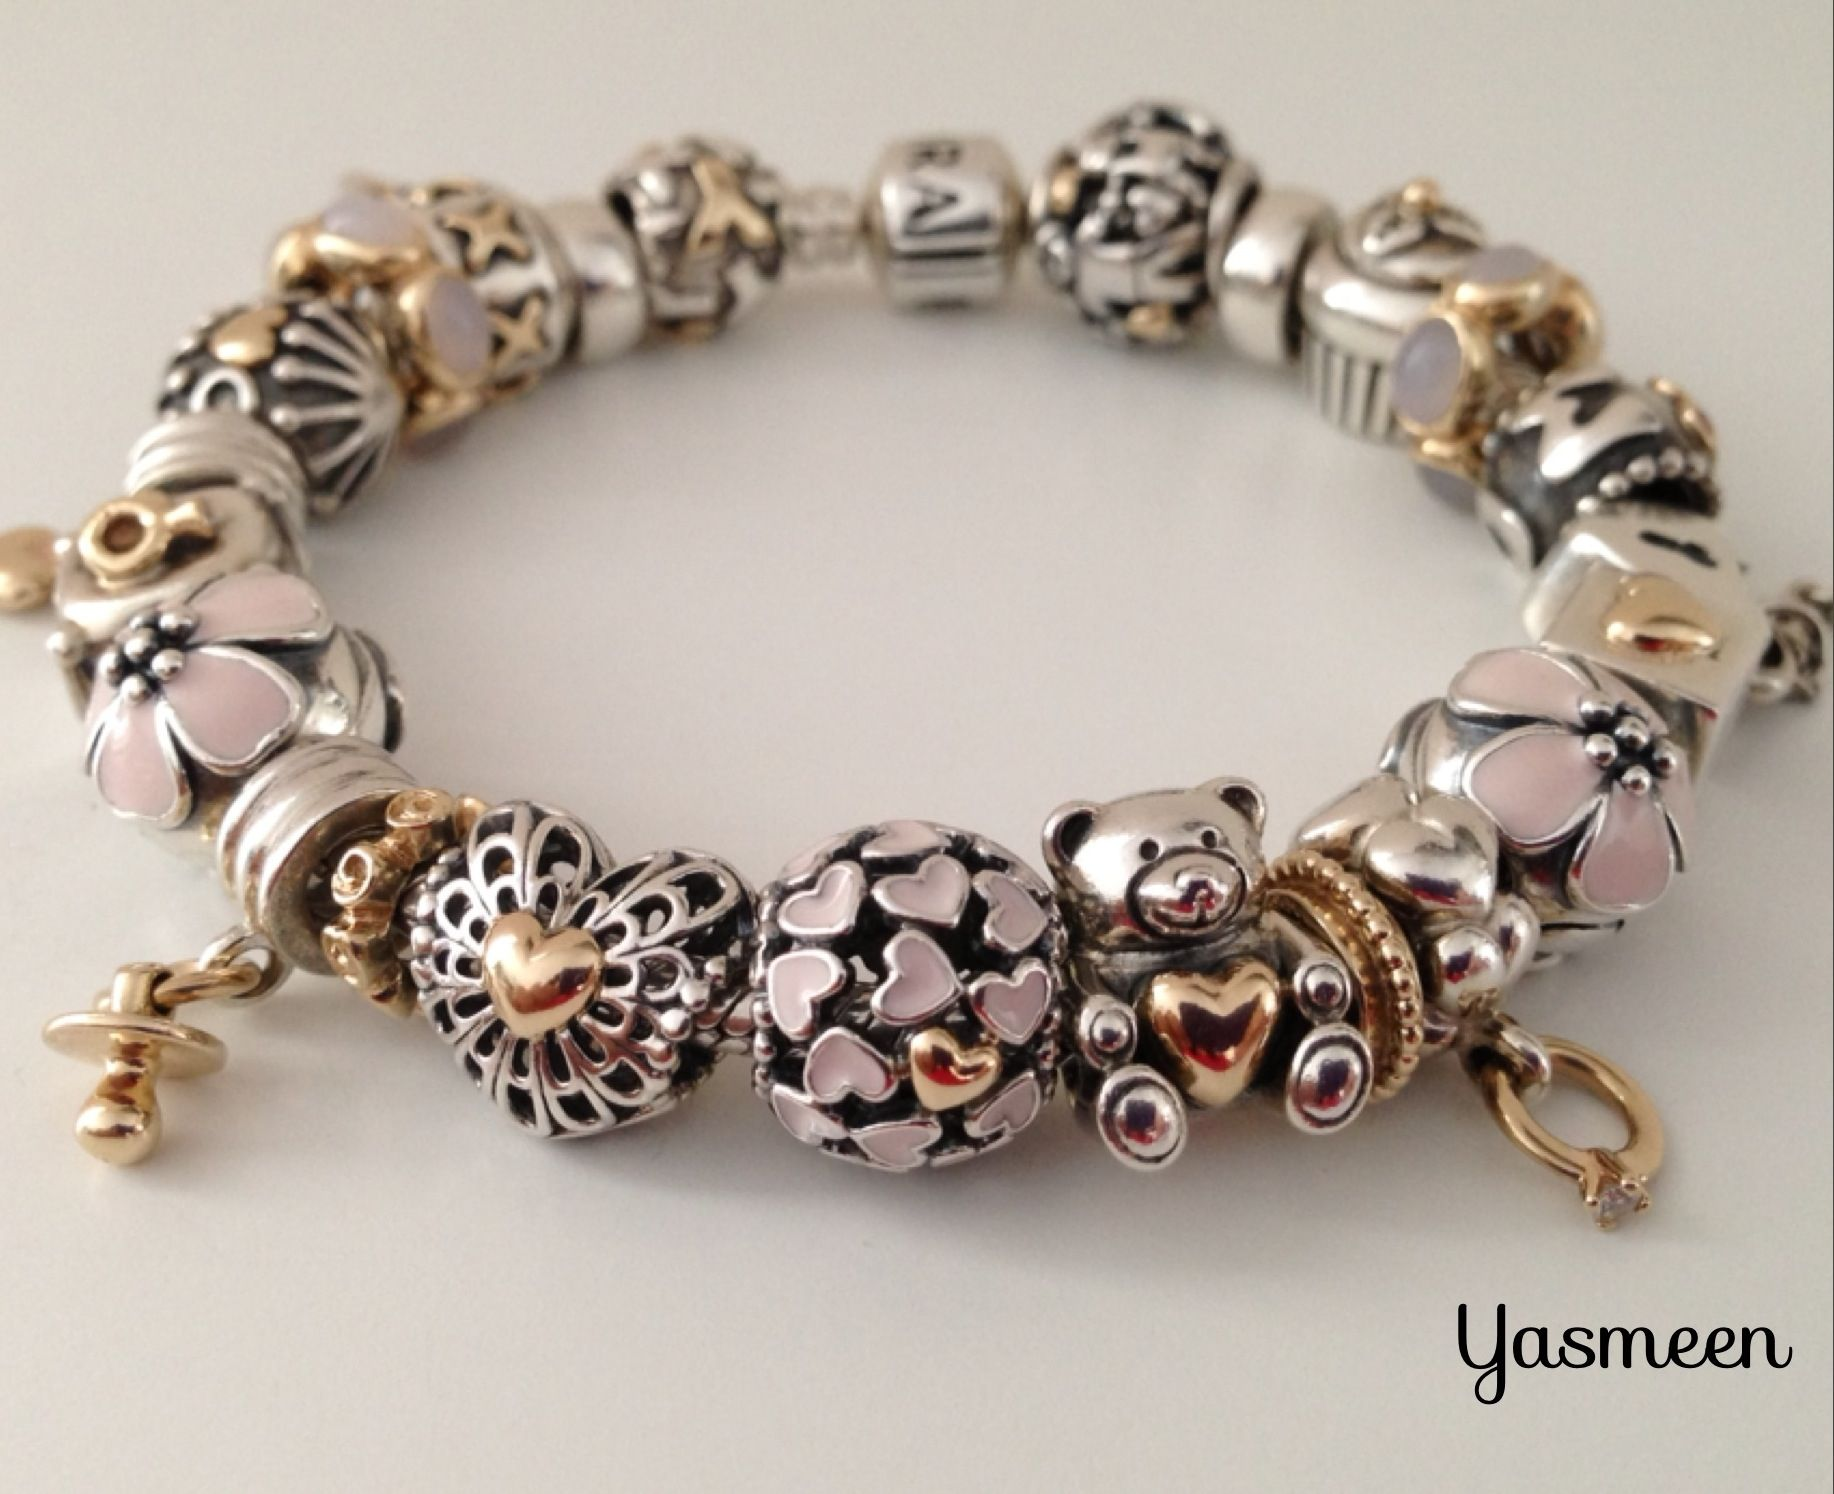 #pandoracrabtreeloves The Look Of This Two Tone Bracelet Along With Soft  Pink Colors! # Pandora Bracelet Charmspandora Jewelrypandora